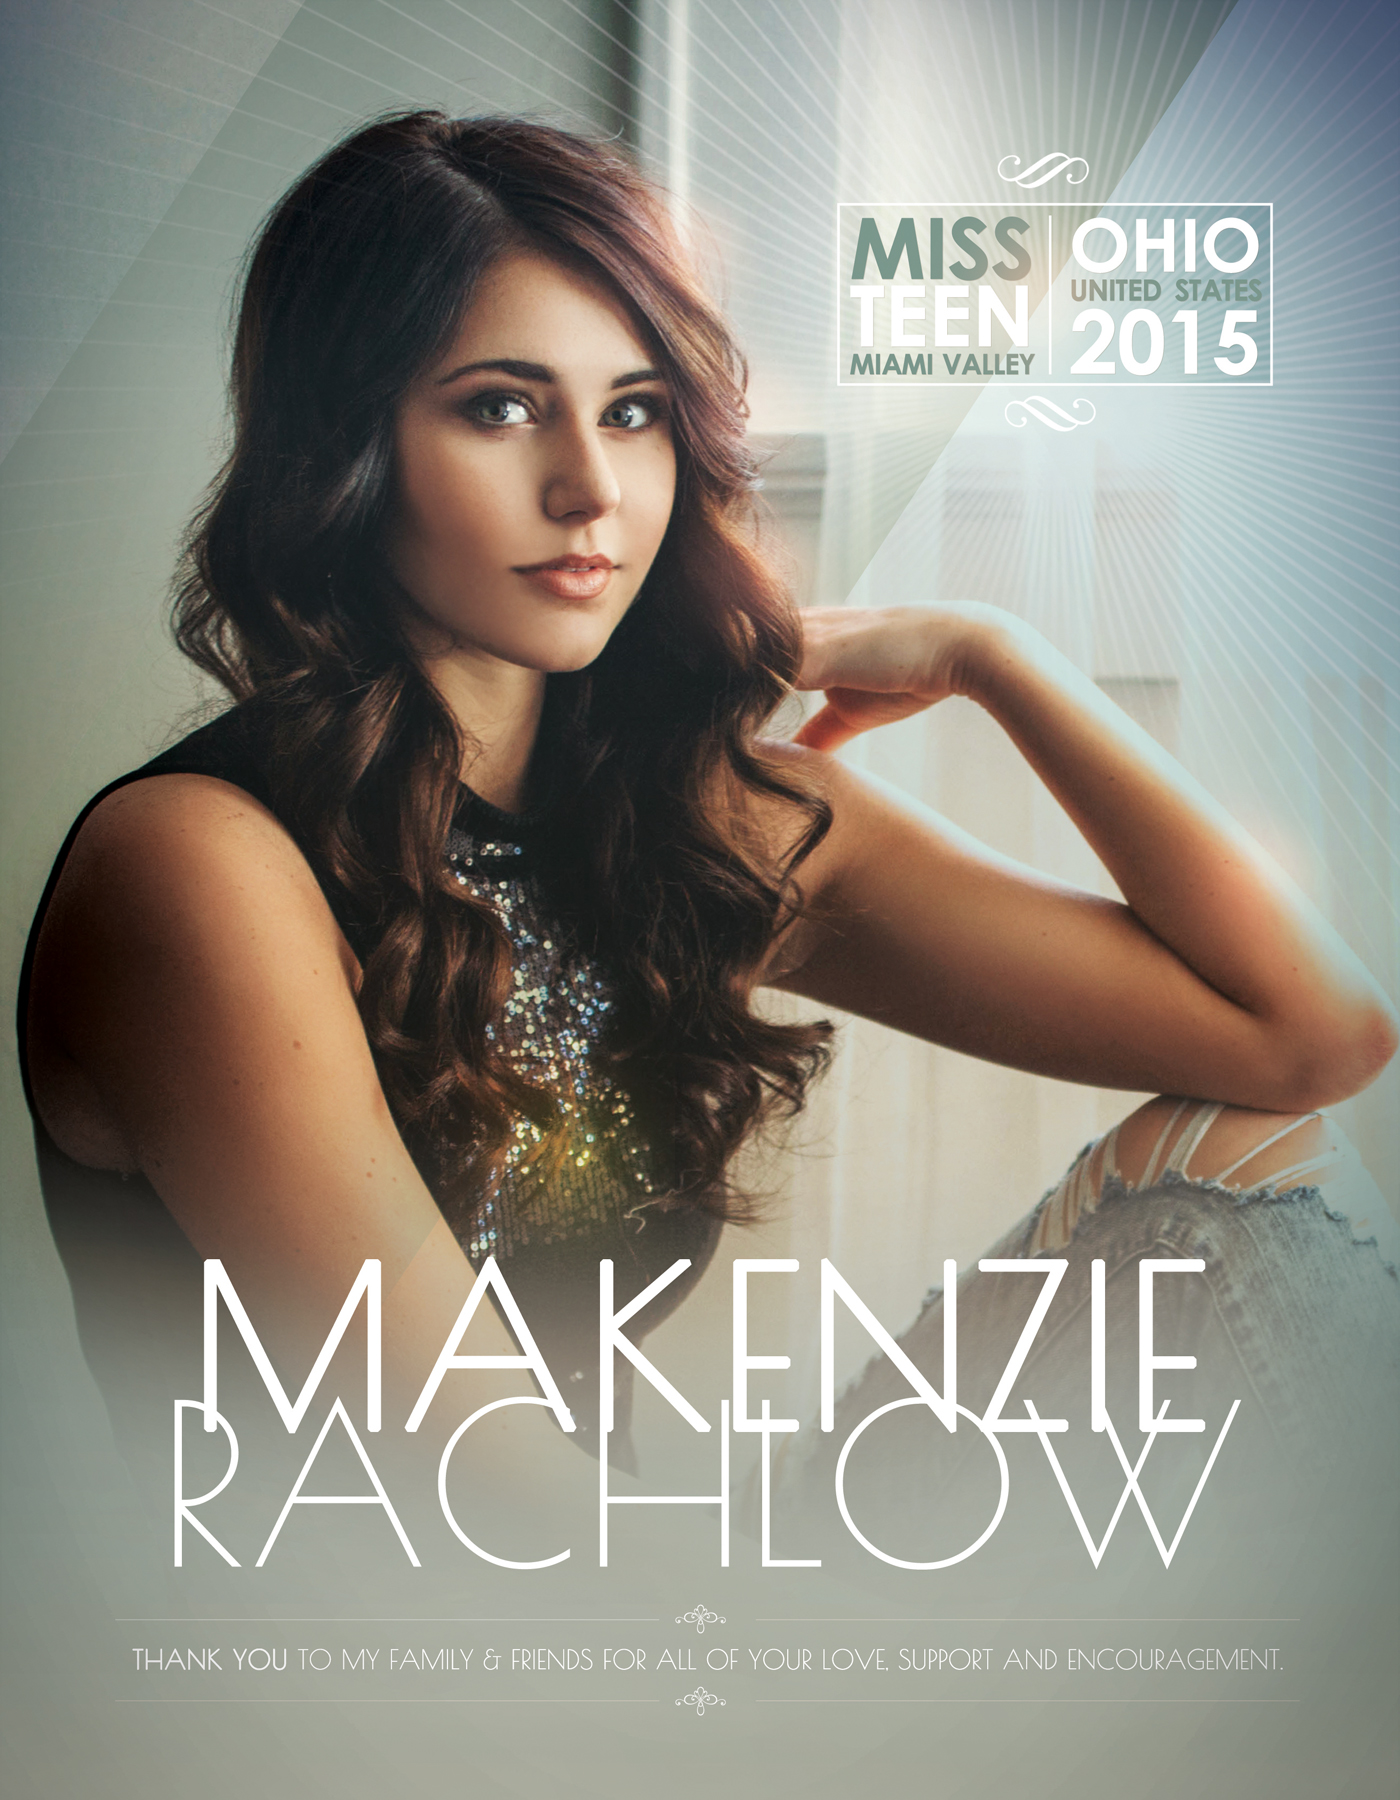 Rachlow, Makenzie AD